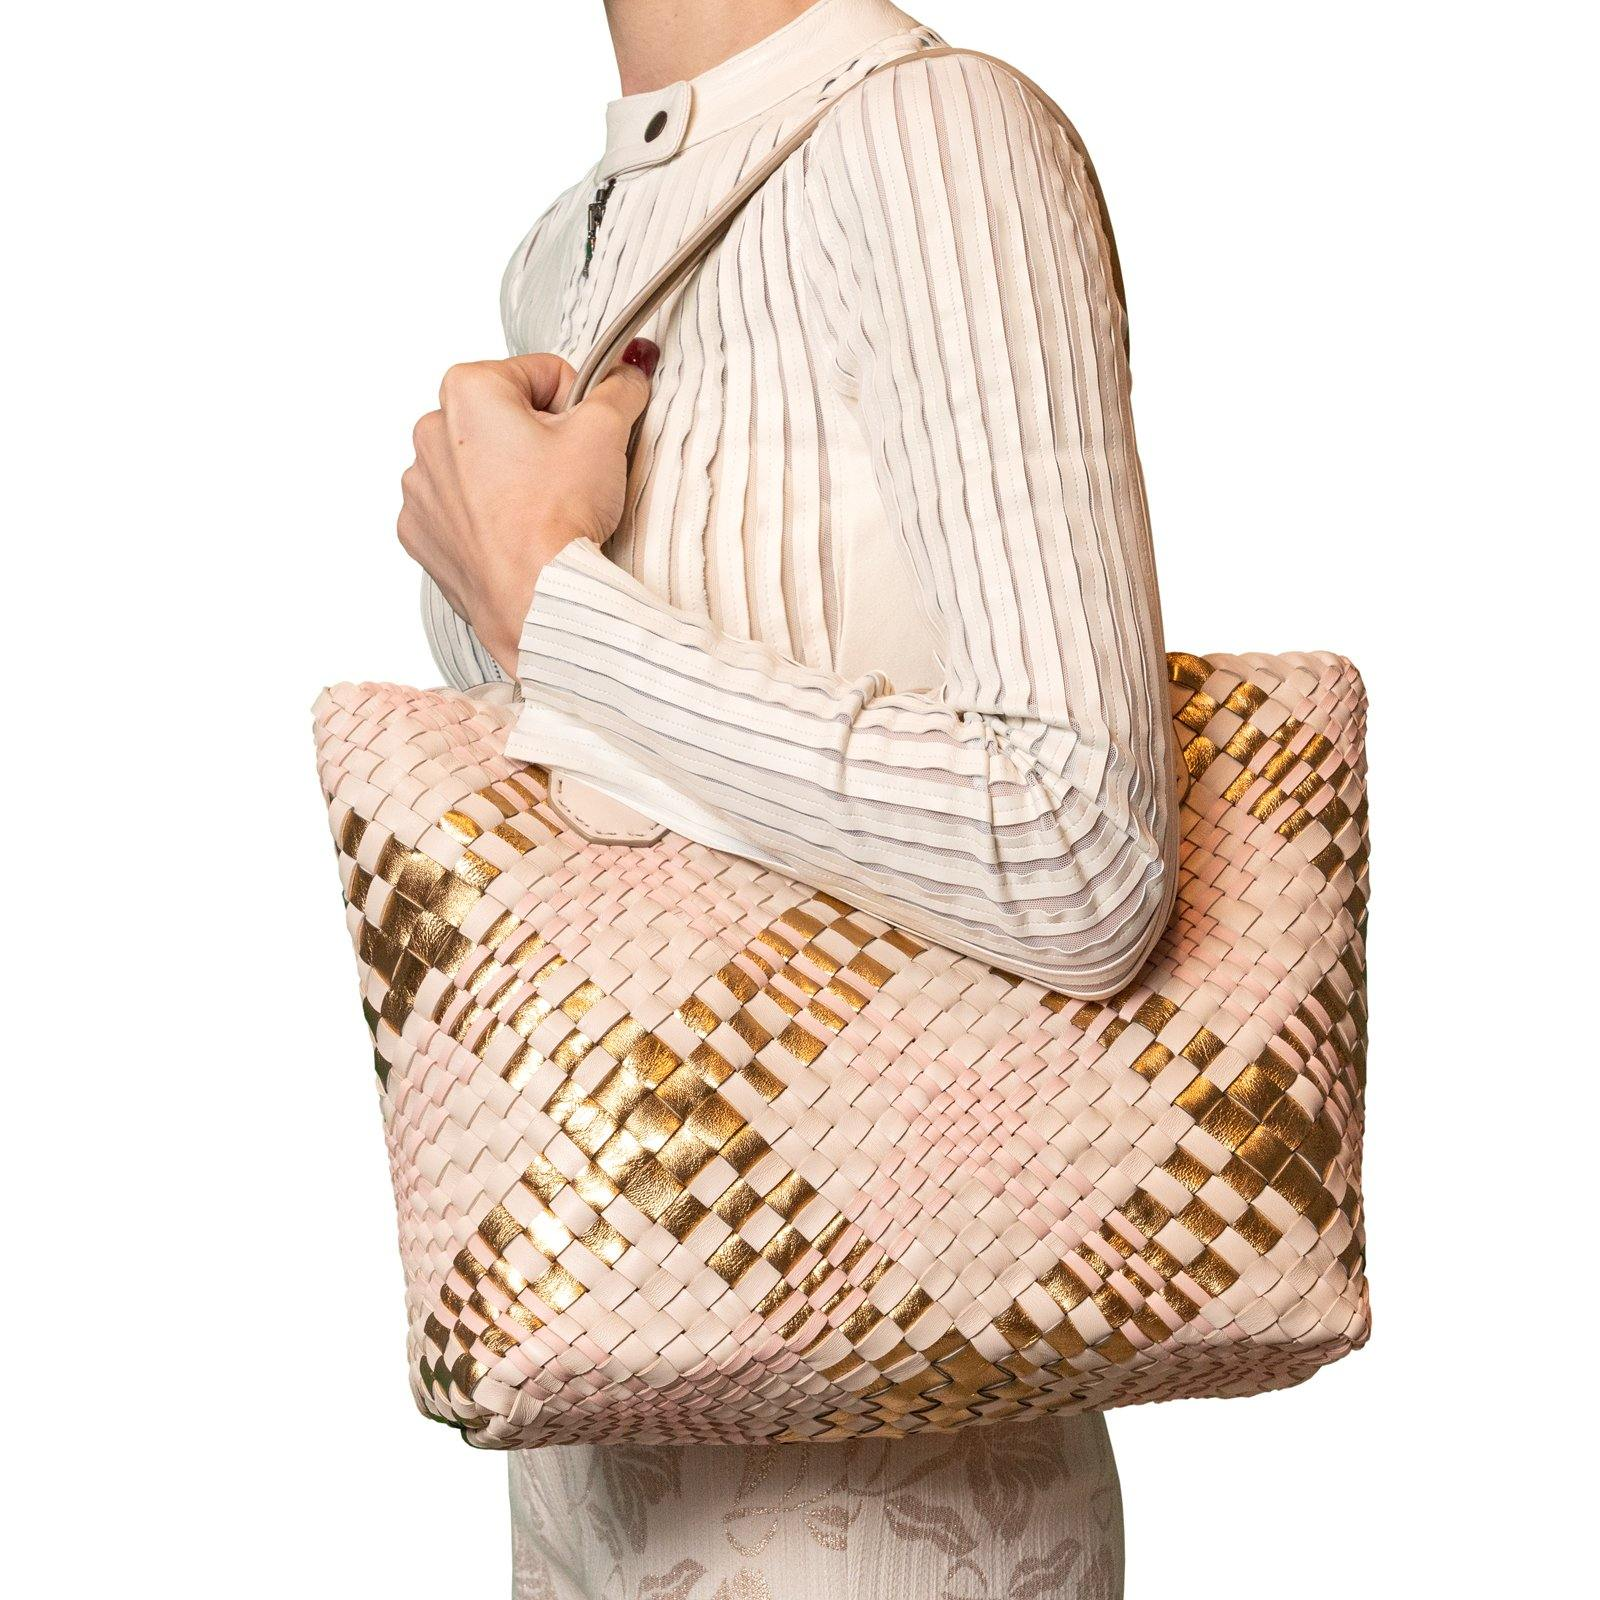 Women Leather Intreccio Scozzese Leather Bag in Sabbia, Pink and Gold